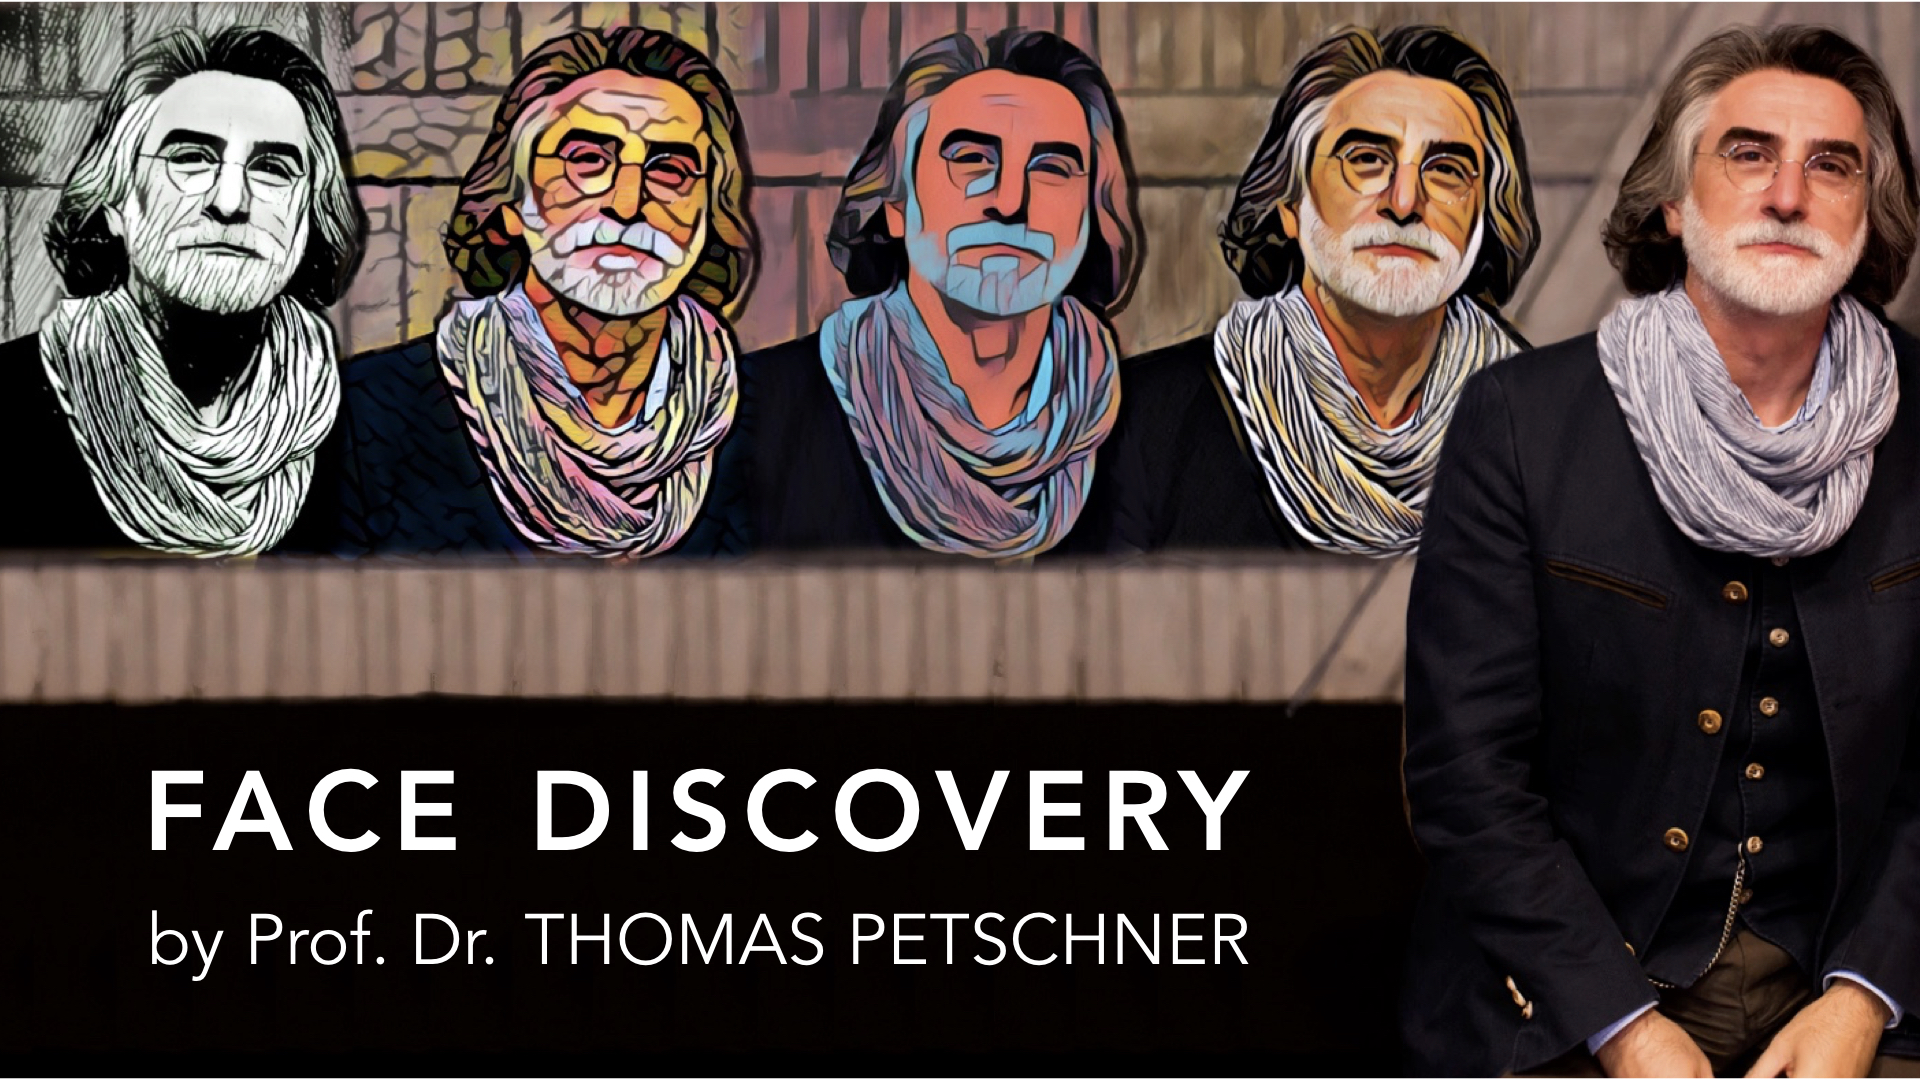 Face Discovery - Dr. Petschner